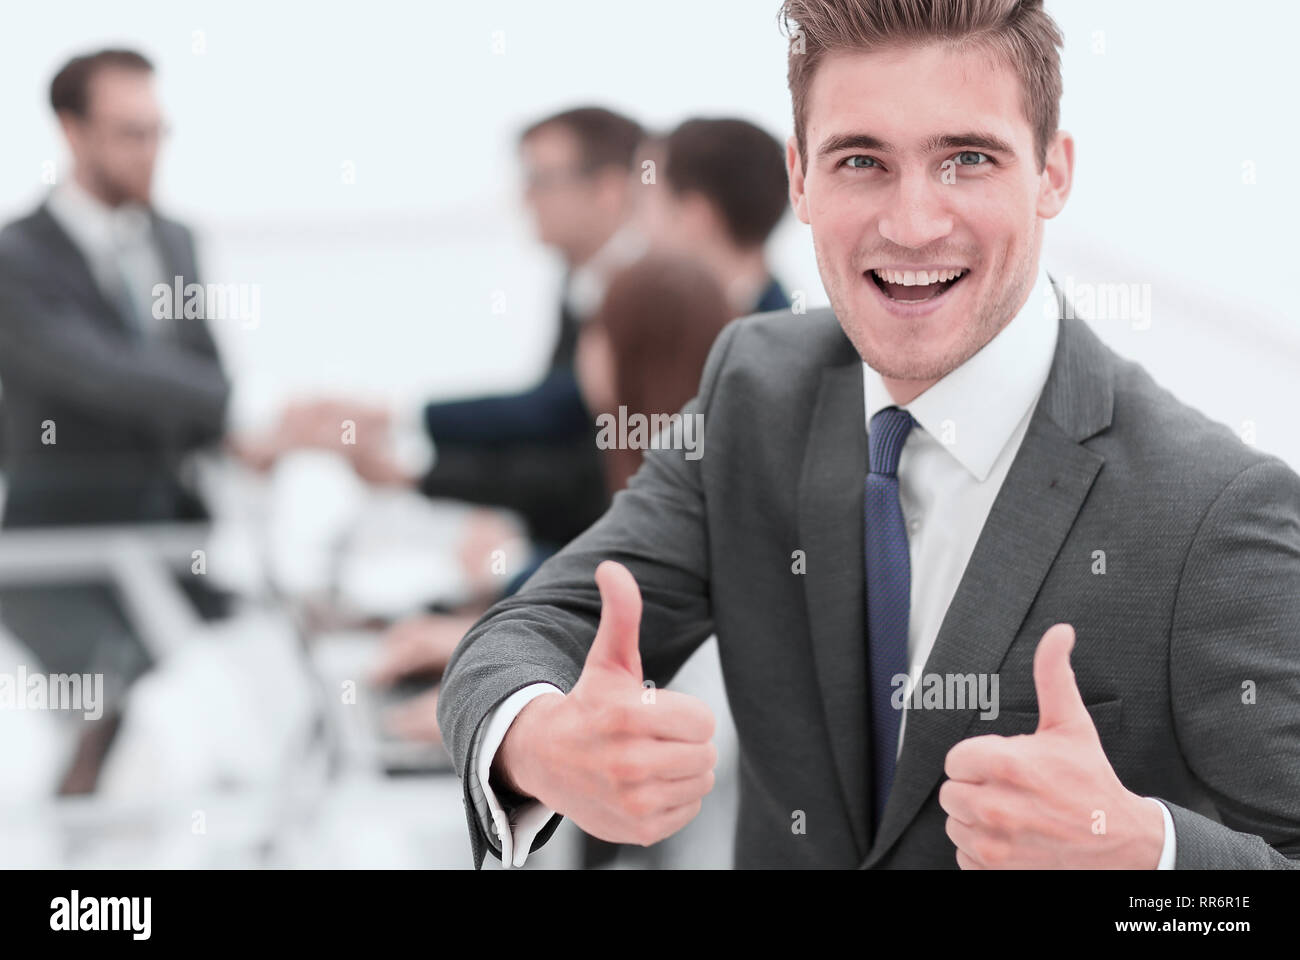 Portrait of happy energetic businessman with thumbs up while  co - Stock Image